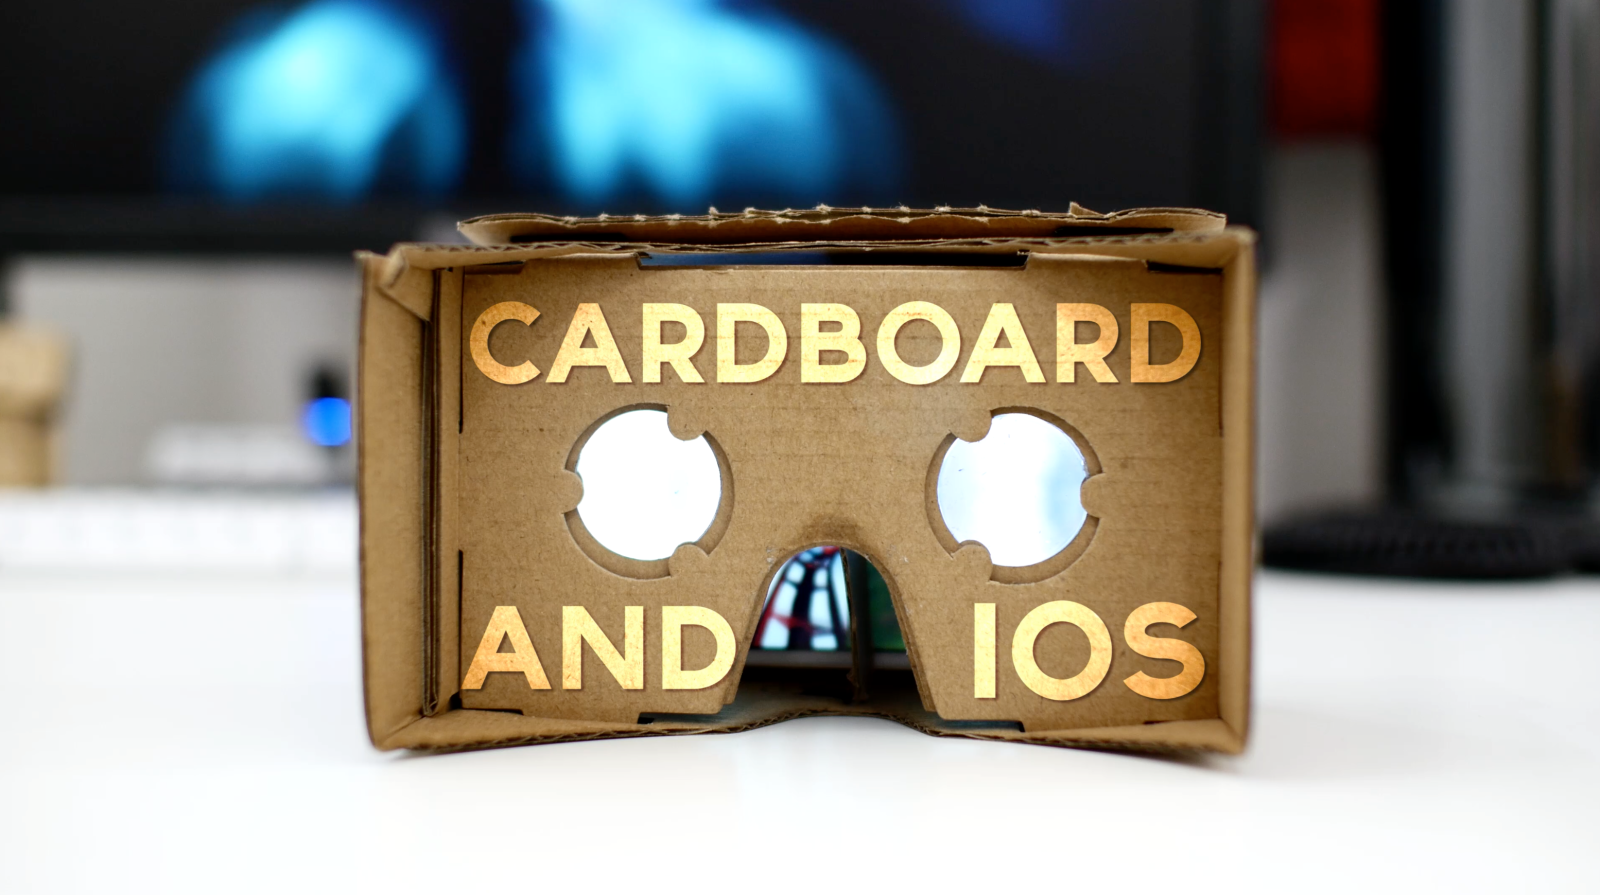 Makeshift Apple VR headset: How to use Google Cardboard with